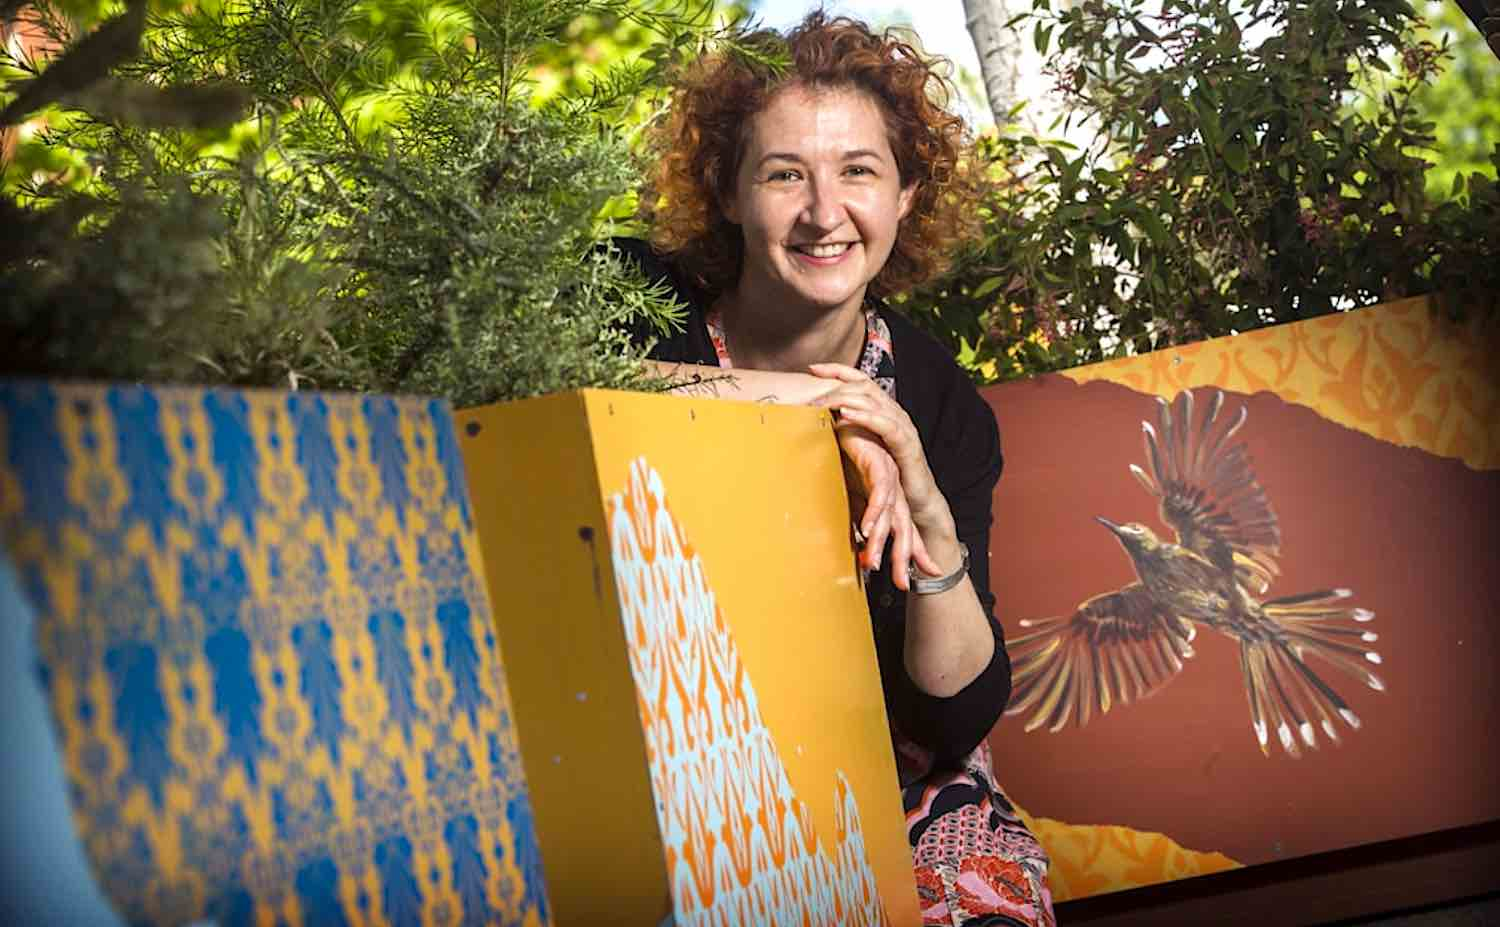 Artist Clare McFarlane with her winning works, outside the Miss Maud hotel & restaurant - corner of Murray & Pier streets, Perth. Photo by Simon Santi